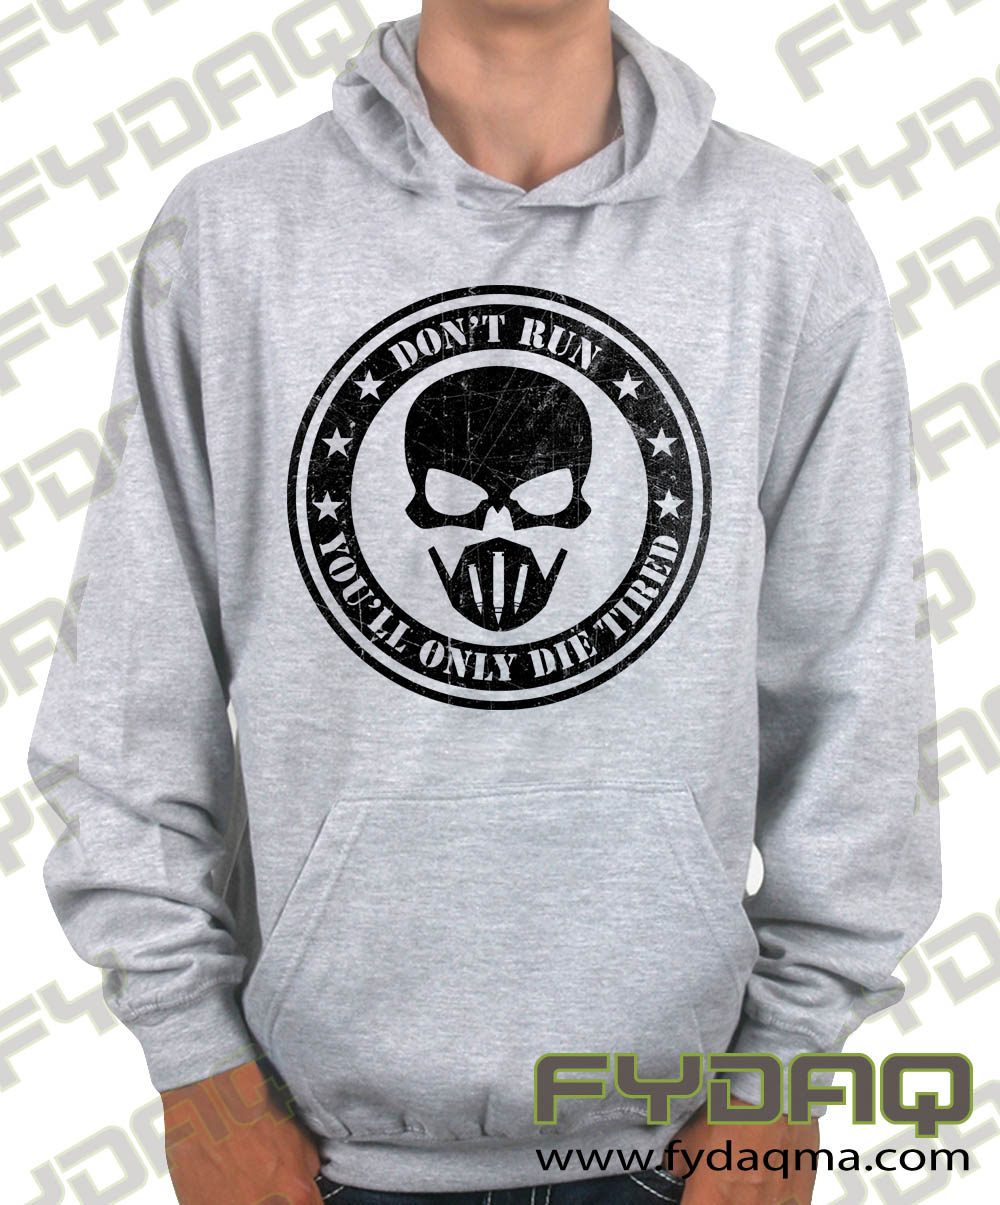 Don't-run-you'll-only-die-tired-heather-grey-hoodie-fydaq